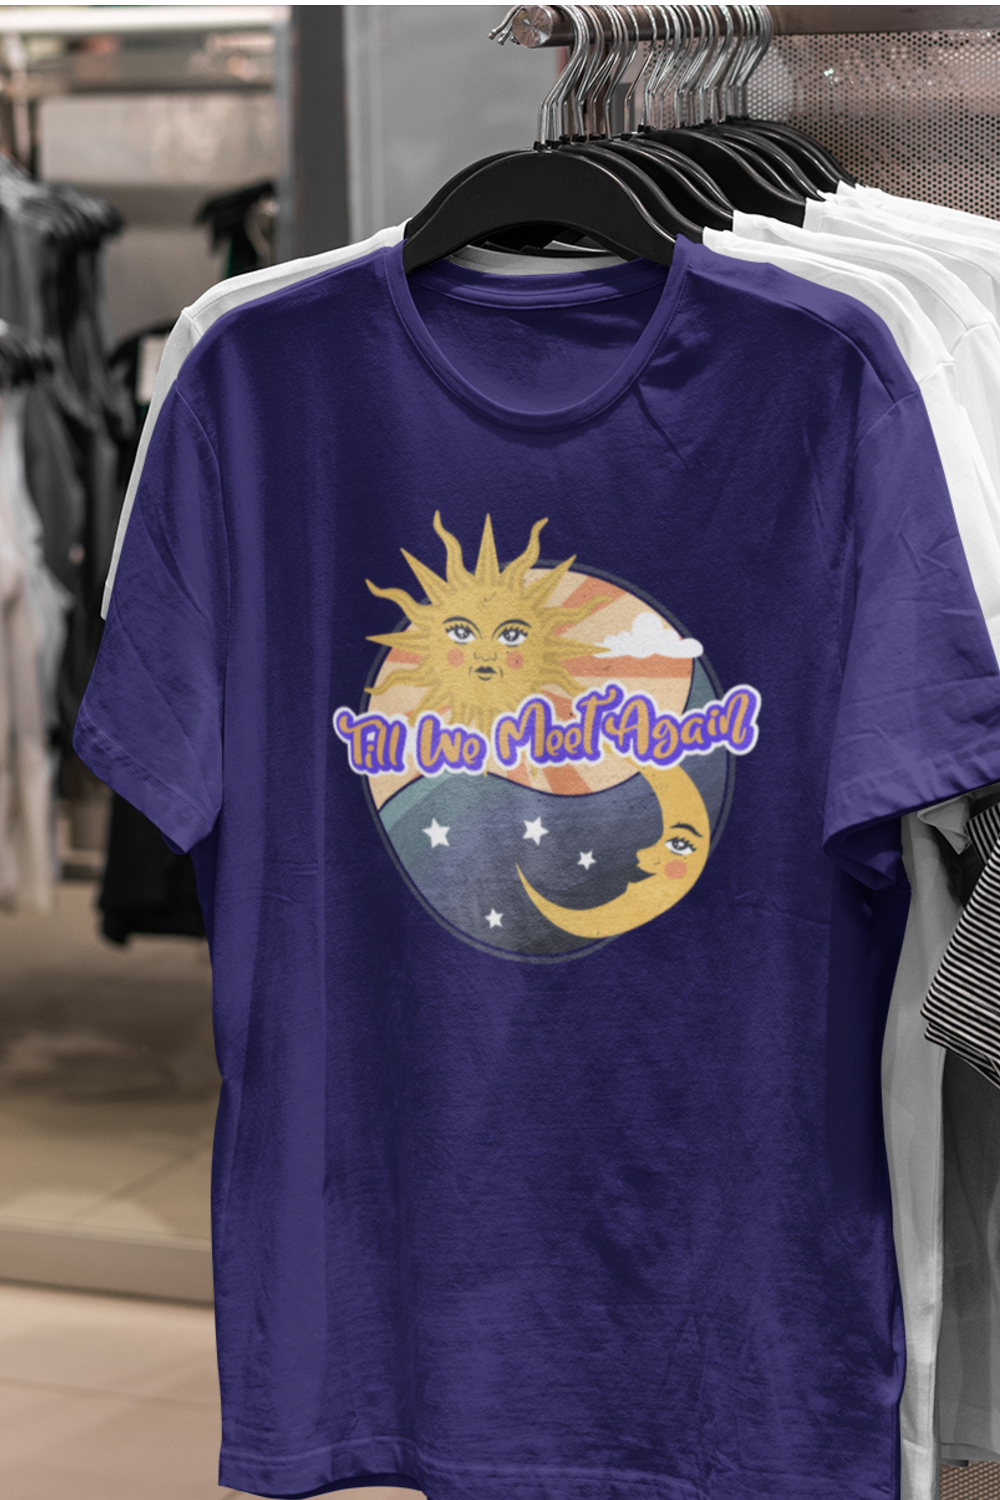 Add something new to your wardrobe with this Sun And Moon design or give it as the perfect gift!  #SunTshirt #SummerTshirt #SunAndMoon #DayAndNight #TshirtDesign #VintageStyle